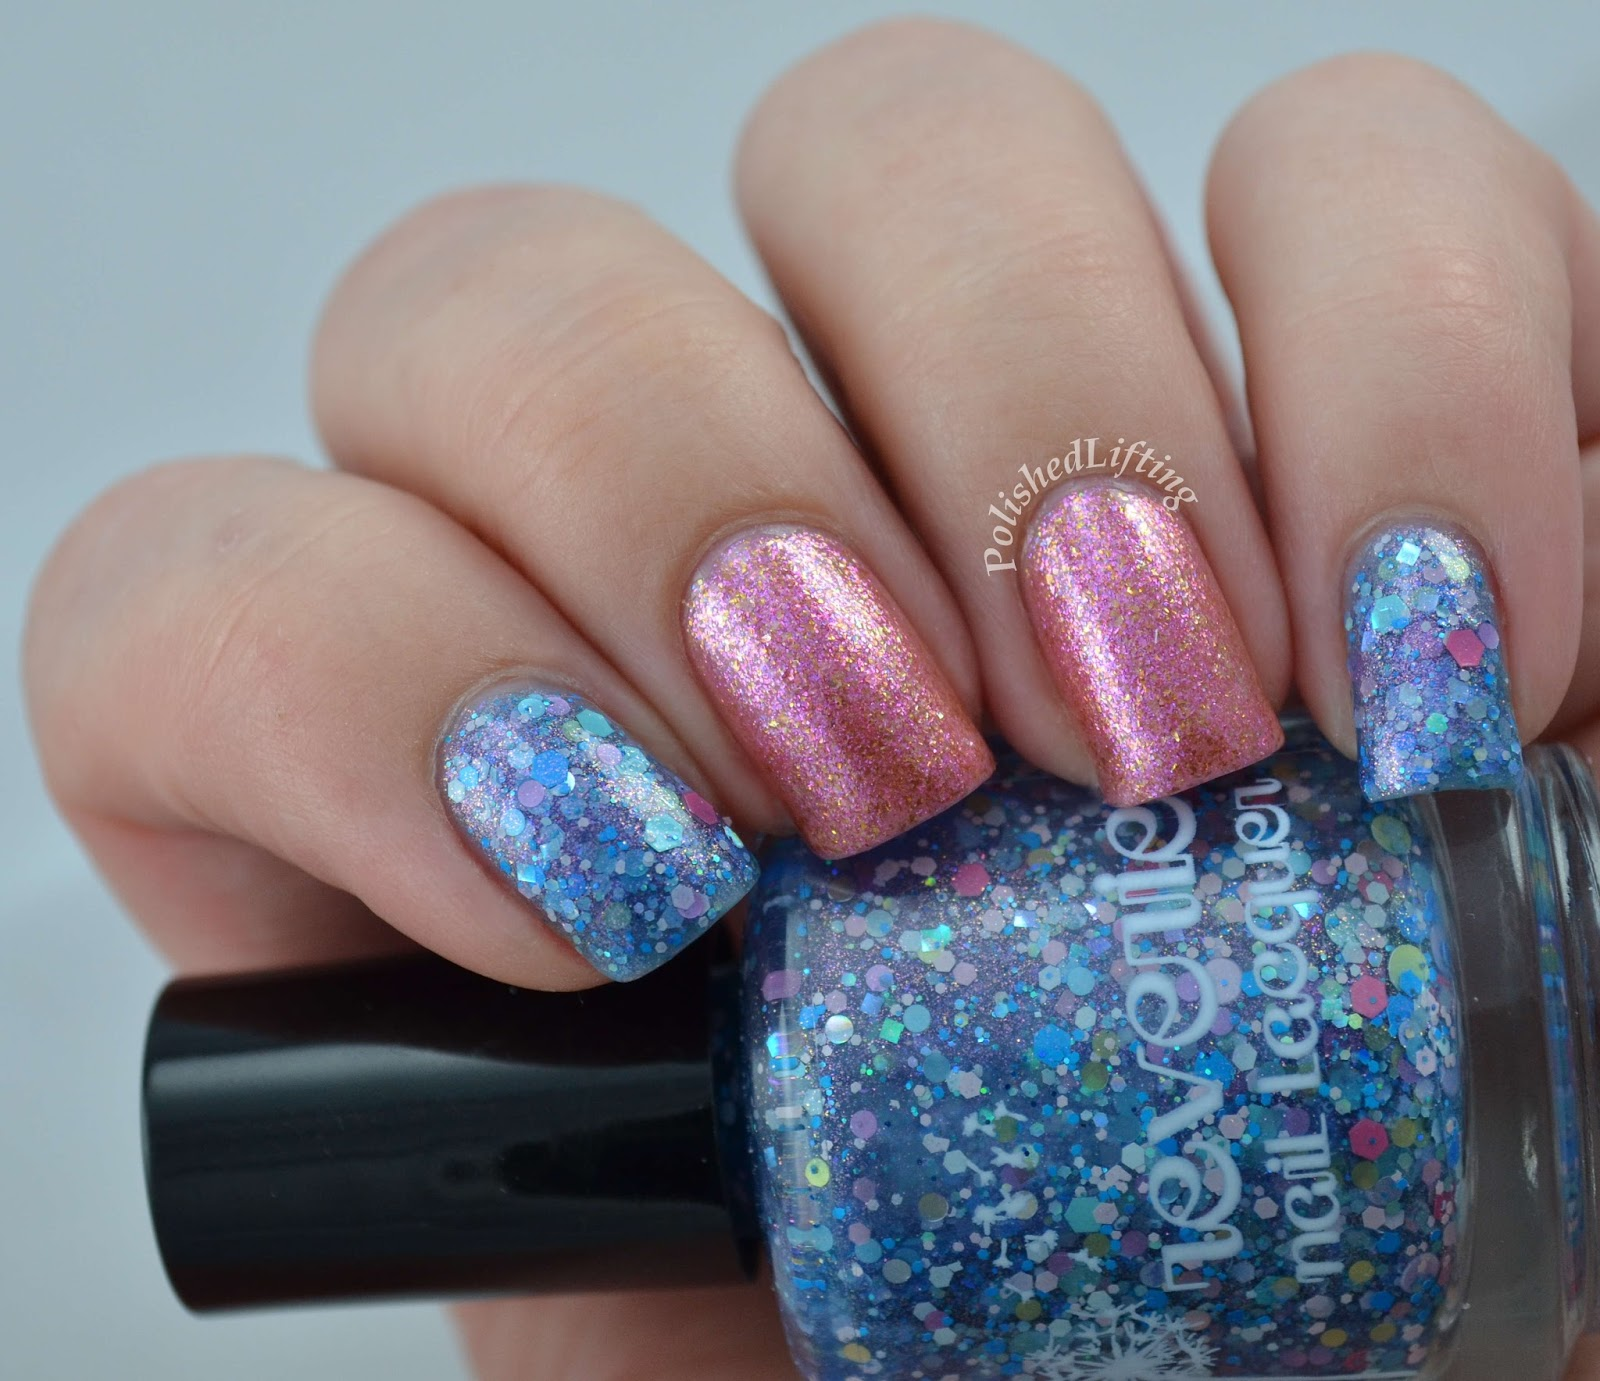 Reverie Nail Lacquer Castles in the Air Rainbow Honey Chemical Plant